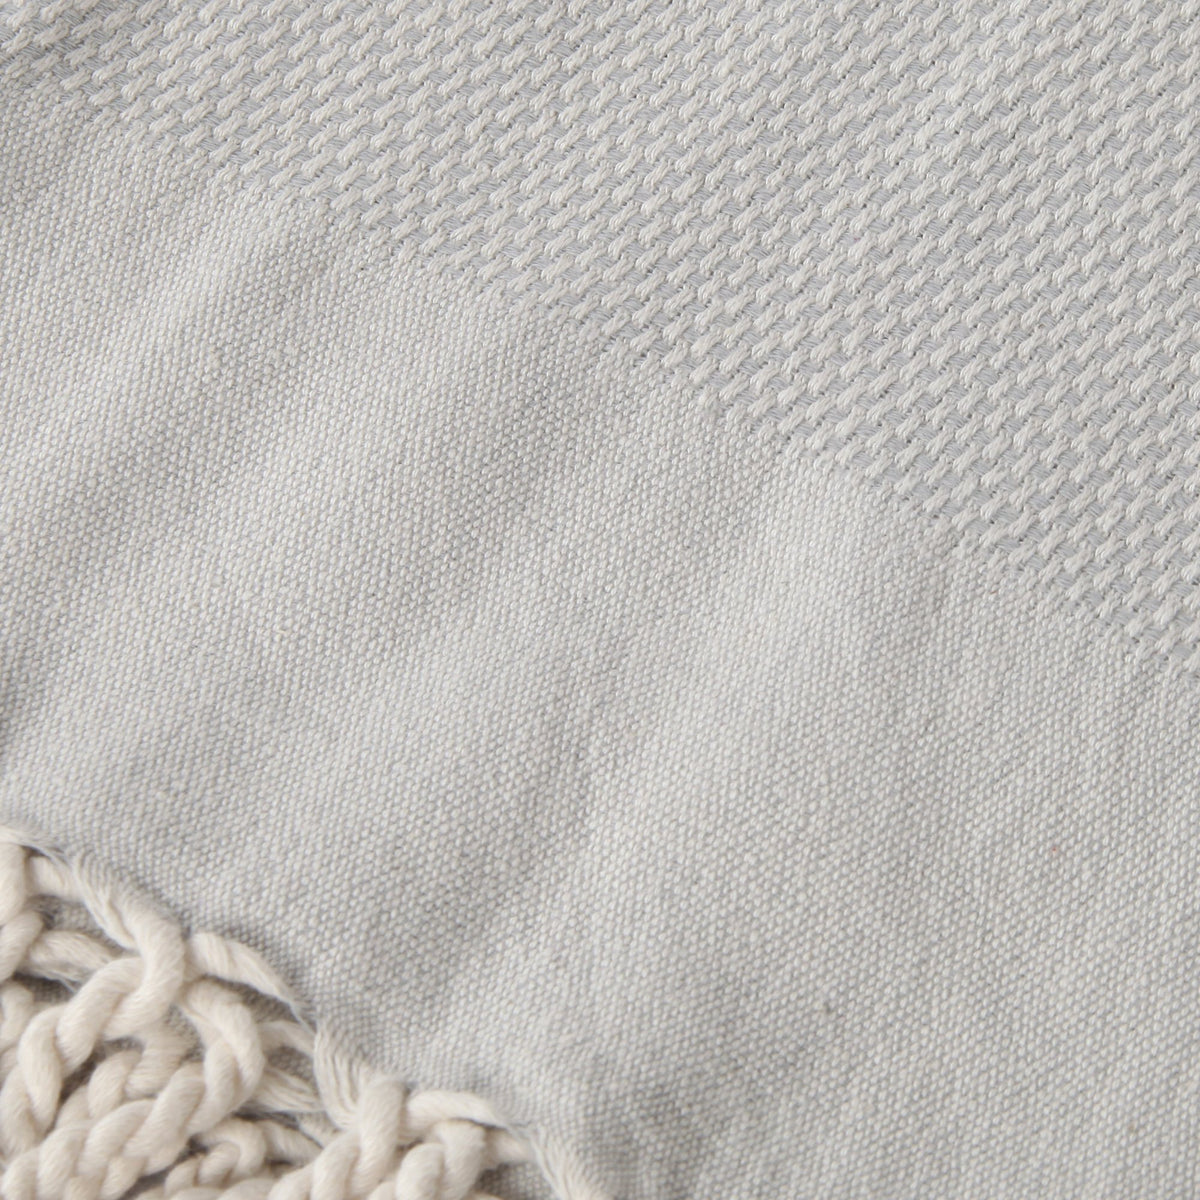 Whisper Weight Turkish Hand Towel